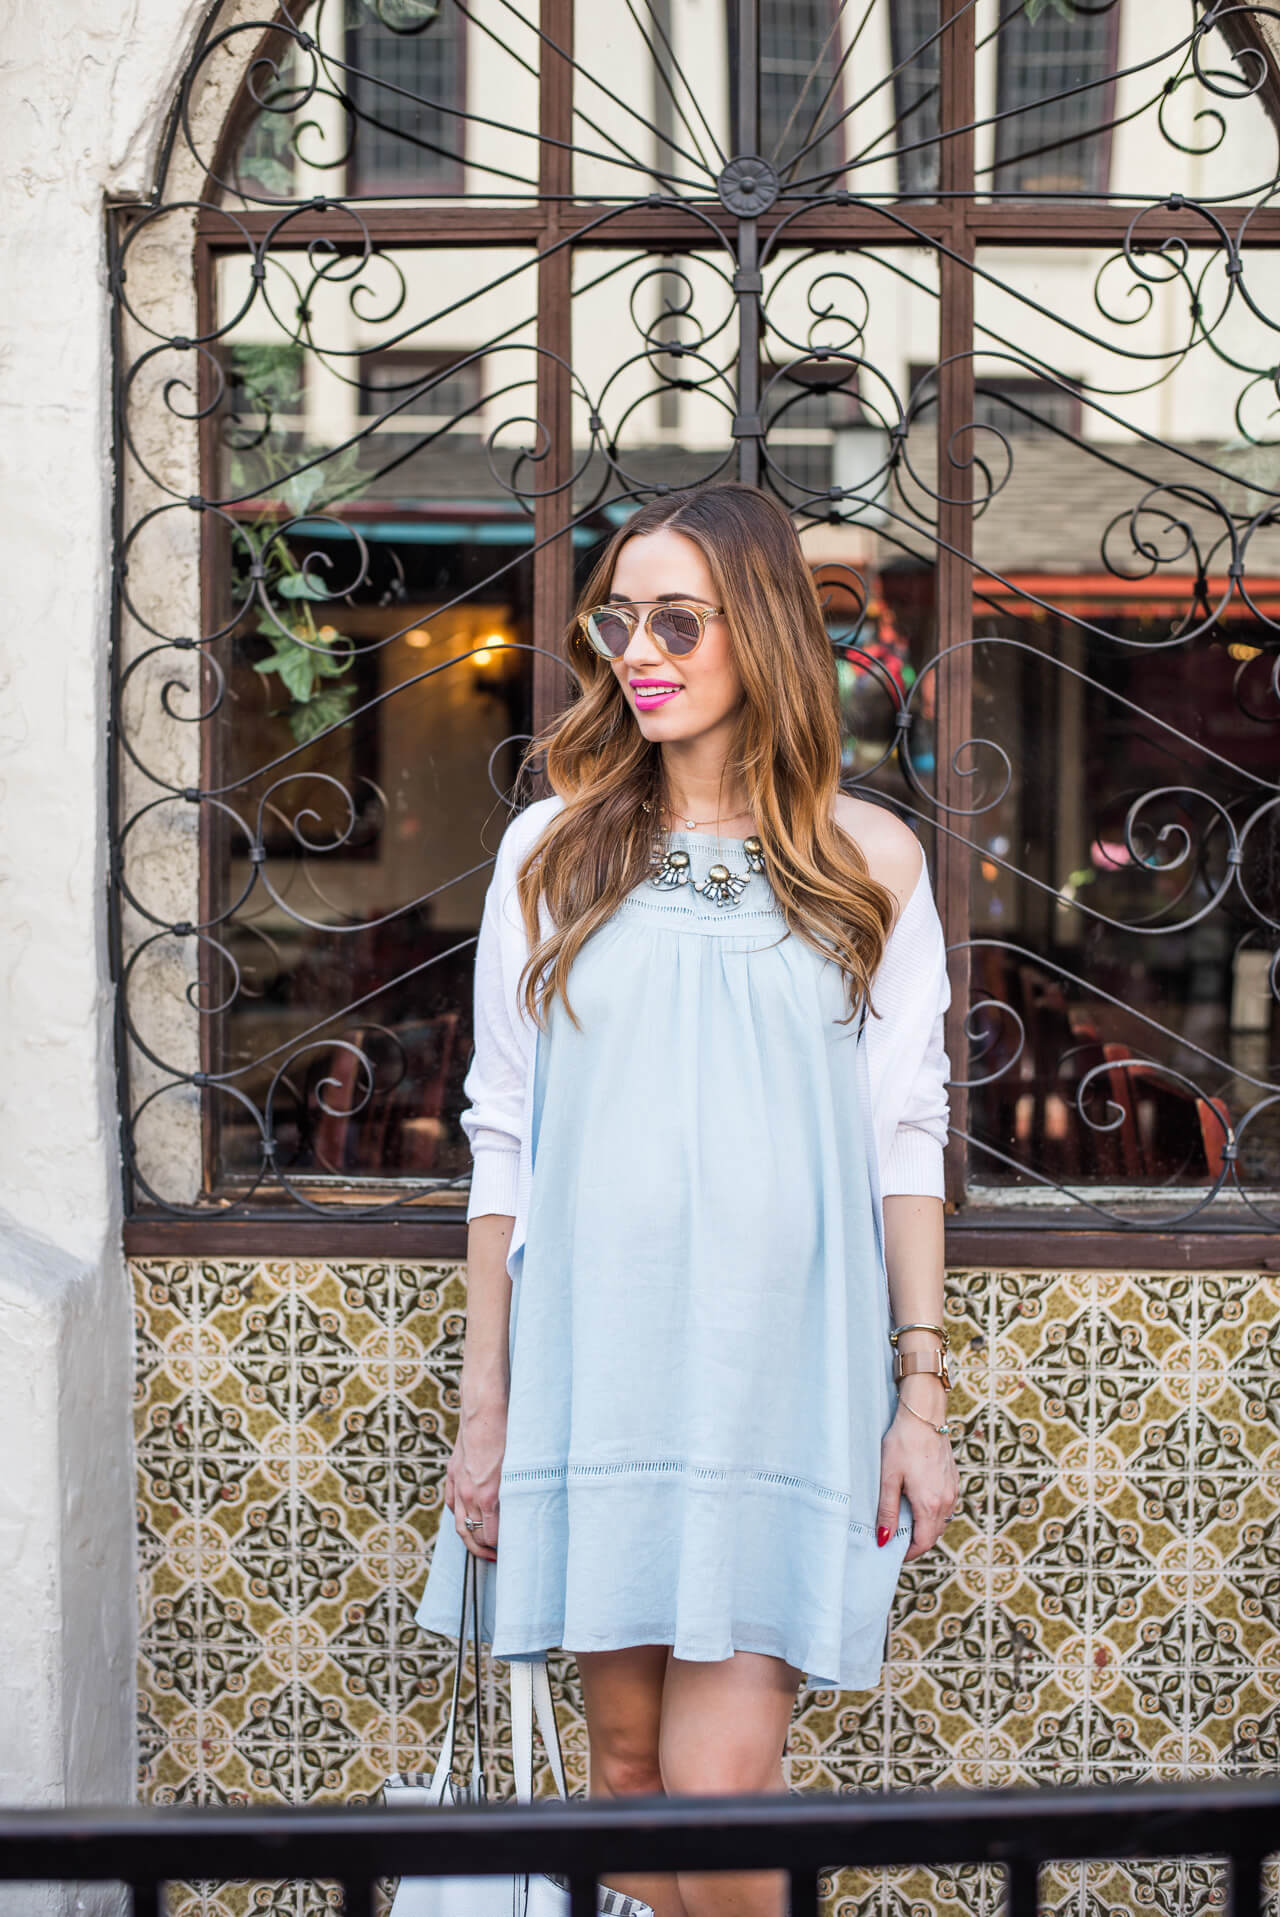 light blue sundress from emily schuman's cupcakes and cashmere collection at nordstrom and shopbop